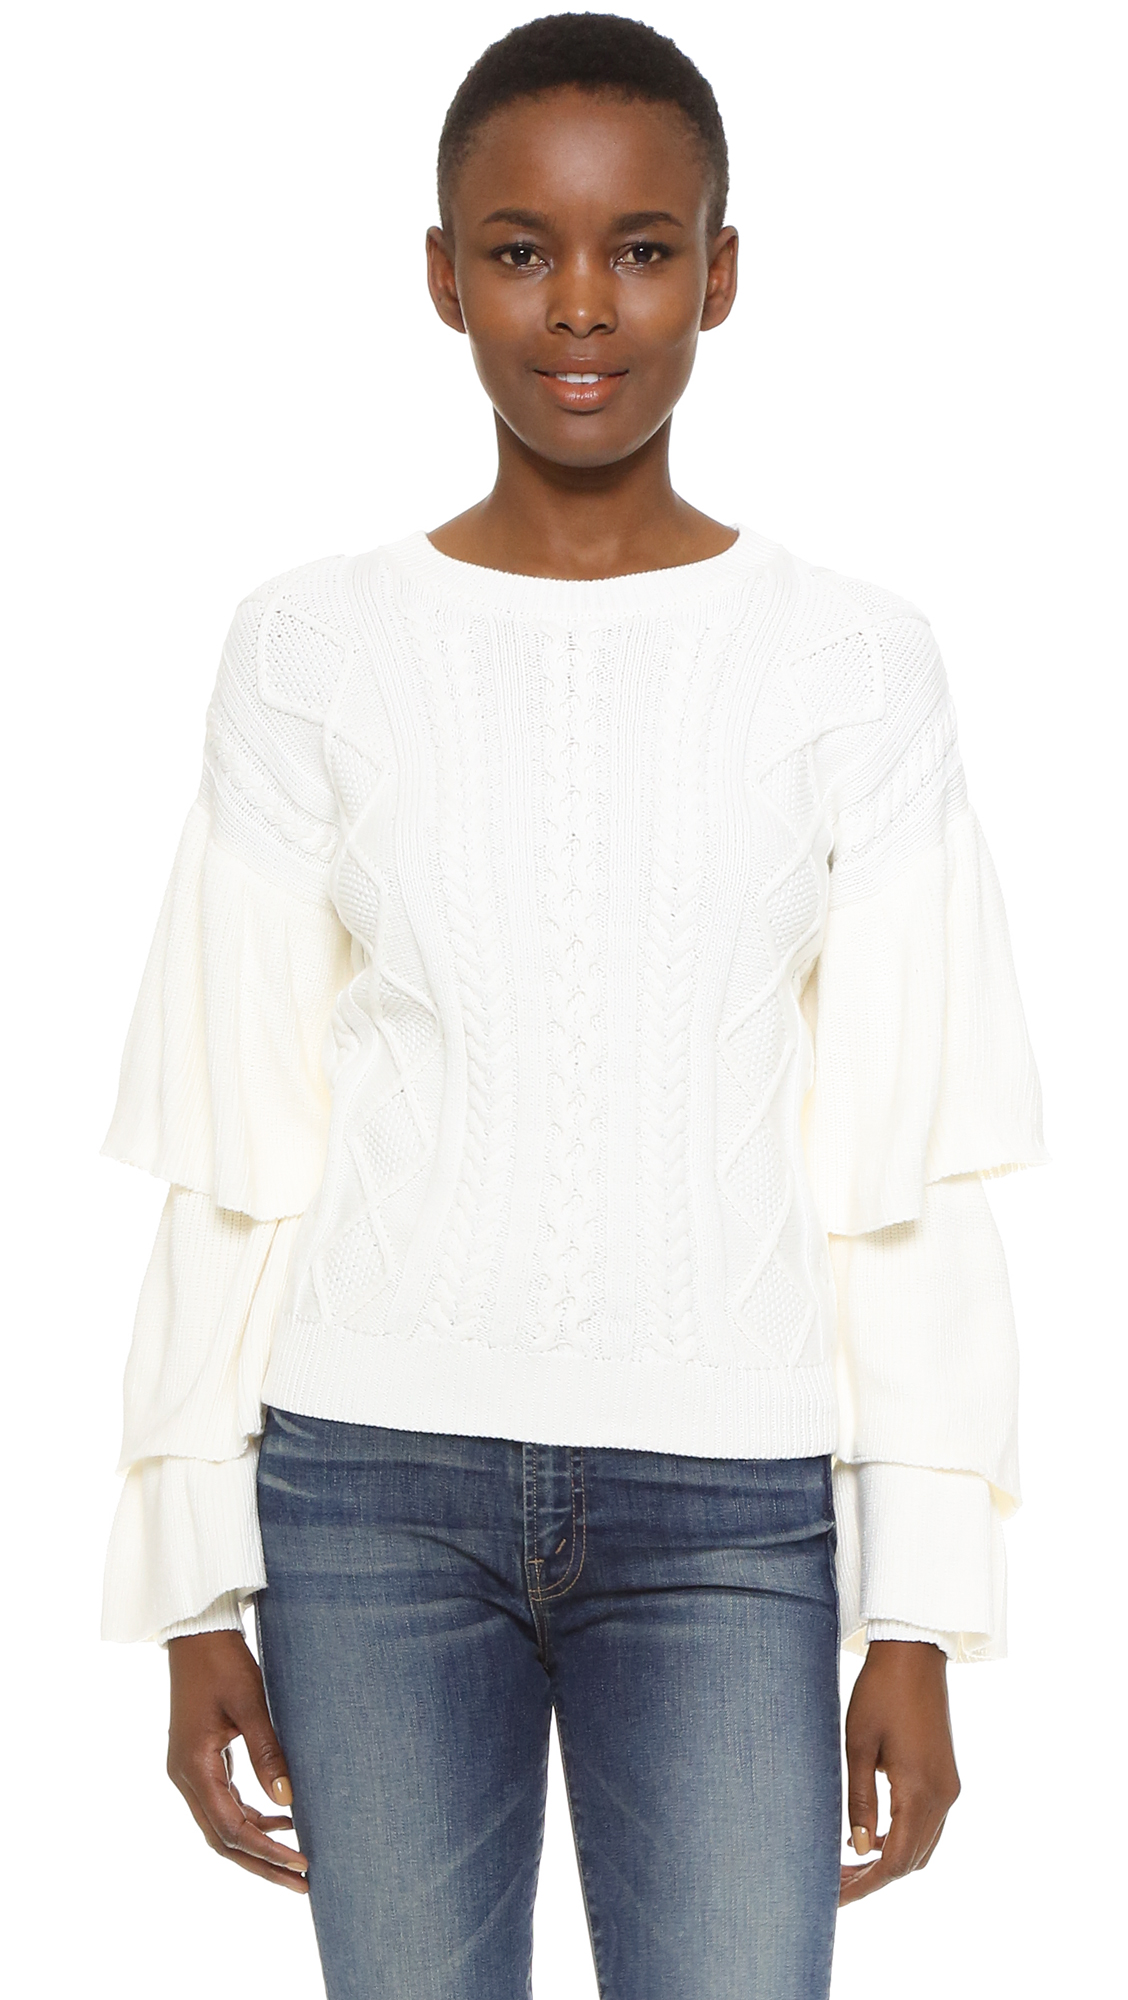 A cable knit Style Mafia sweater gains modern edge with layered ruffles at the long sleeves. Ribbed crew neck and edges. Fabric: Knit. 55% acrylic/45% cotton. Dry clean. Imported, China. Measurements Length: 7.75in / 20cm, from shoulder Measurements